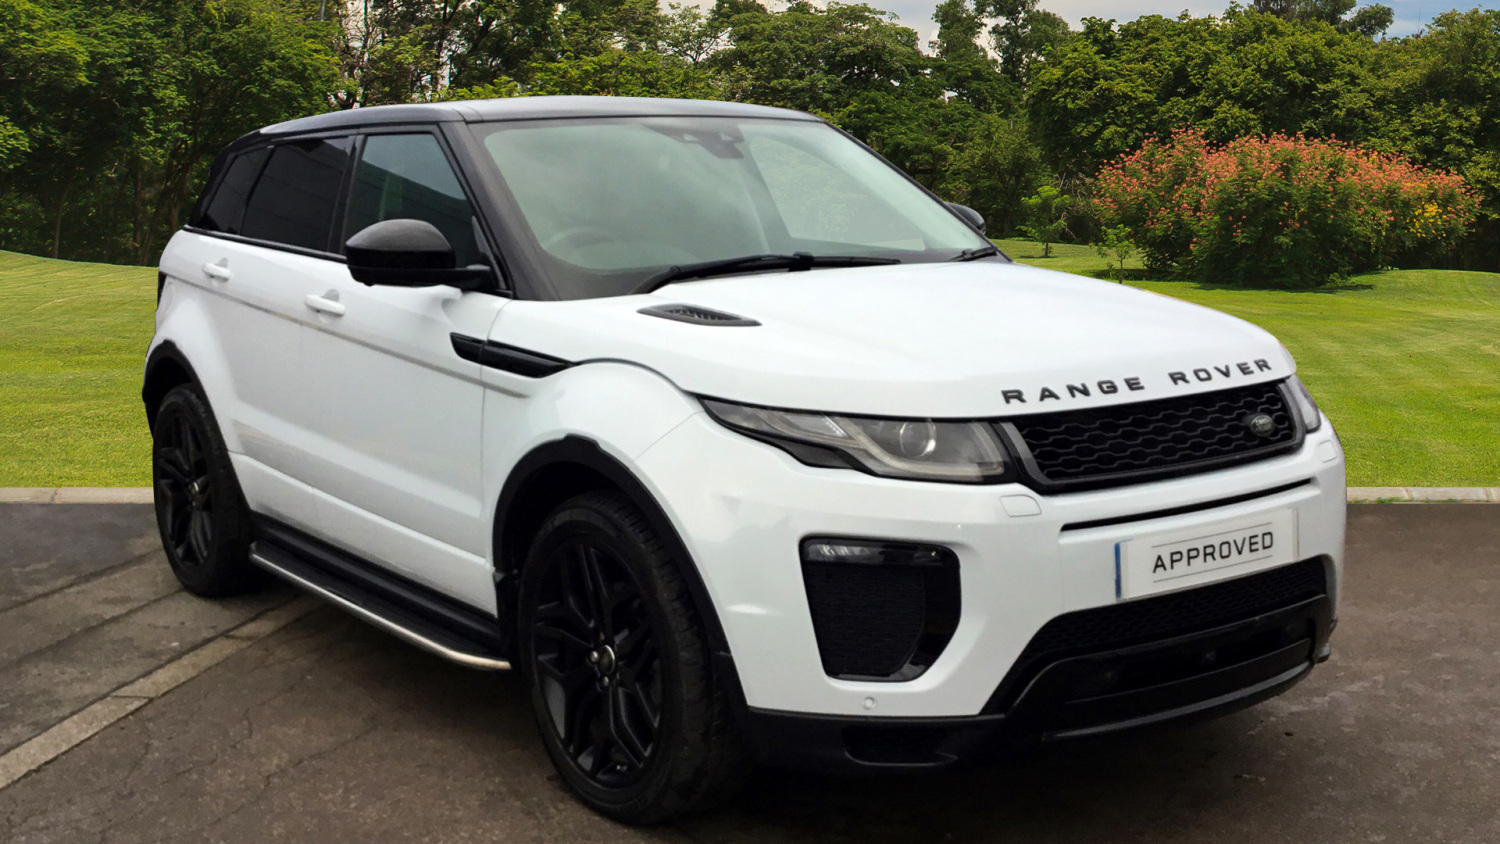 buy online land rover range rover evoque 2 0 td4 hse dynamic lux 5dr auto diesel hatchback for. Black Bedroom Furniture Sets. Home Design Ideas